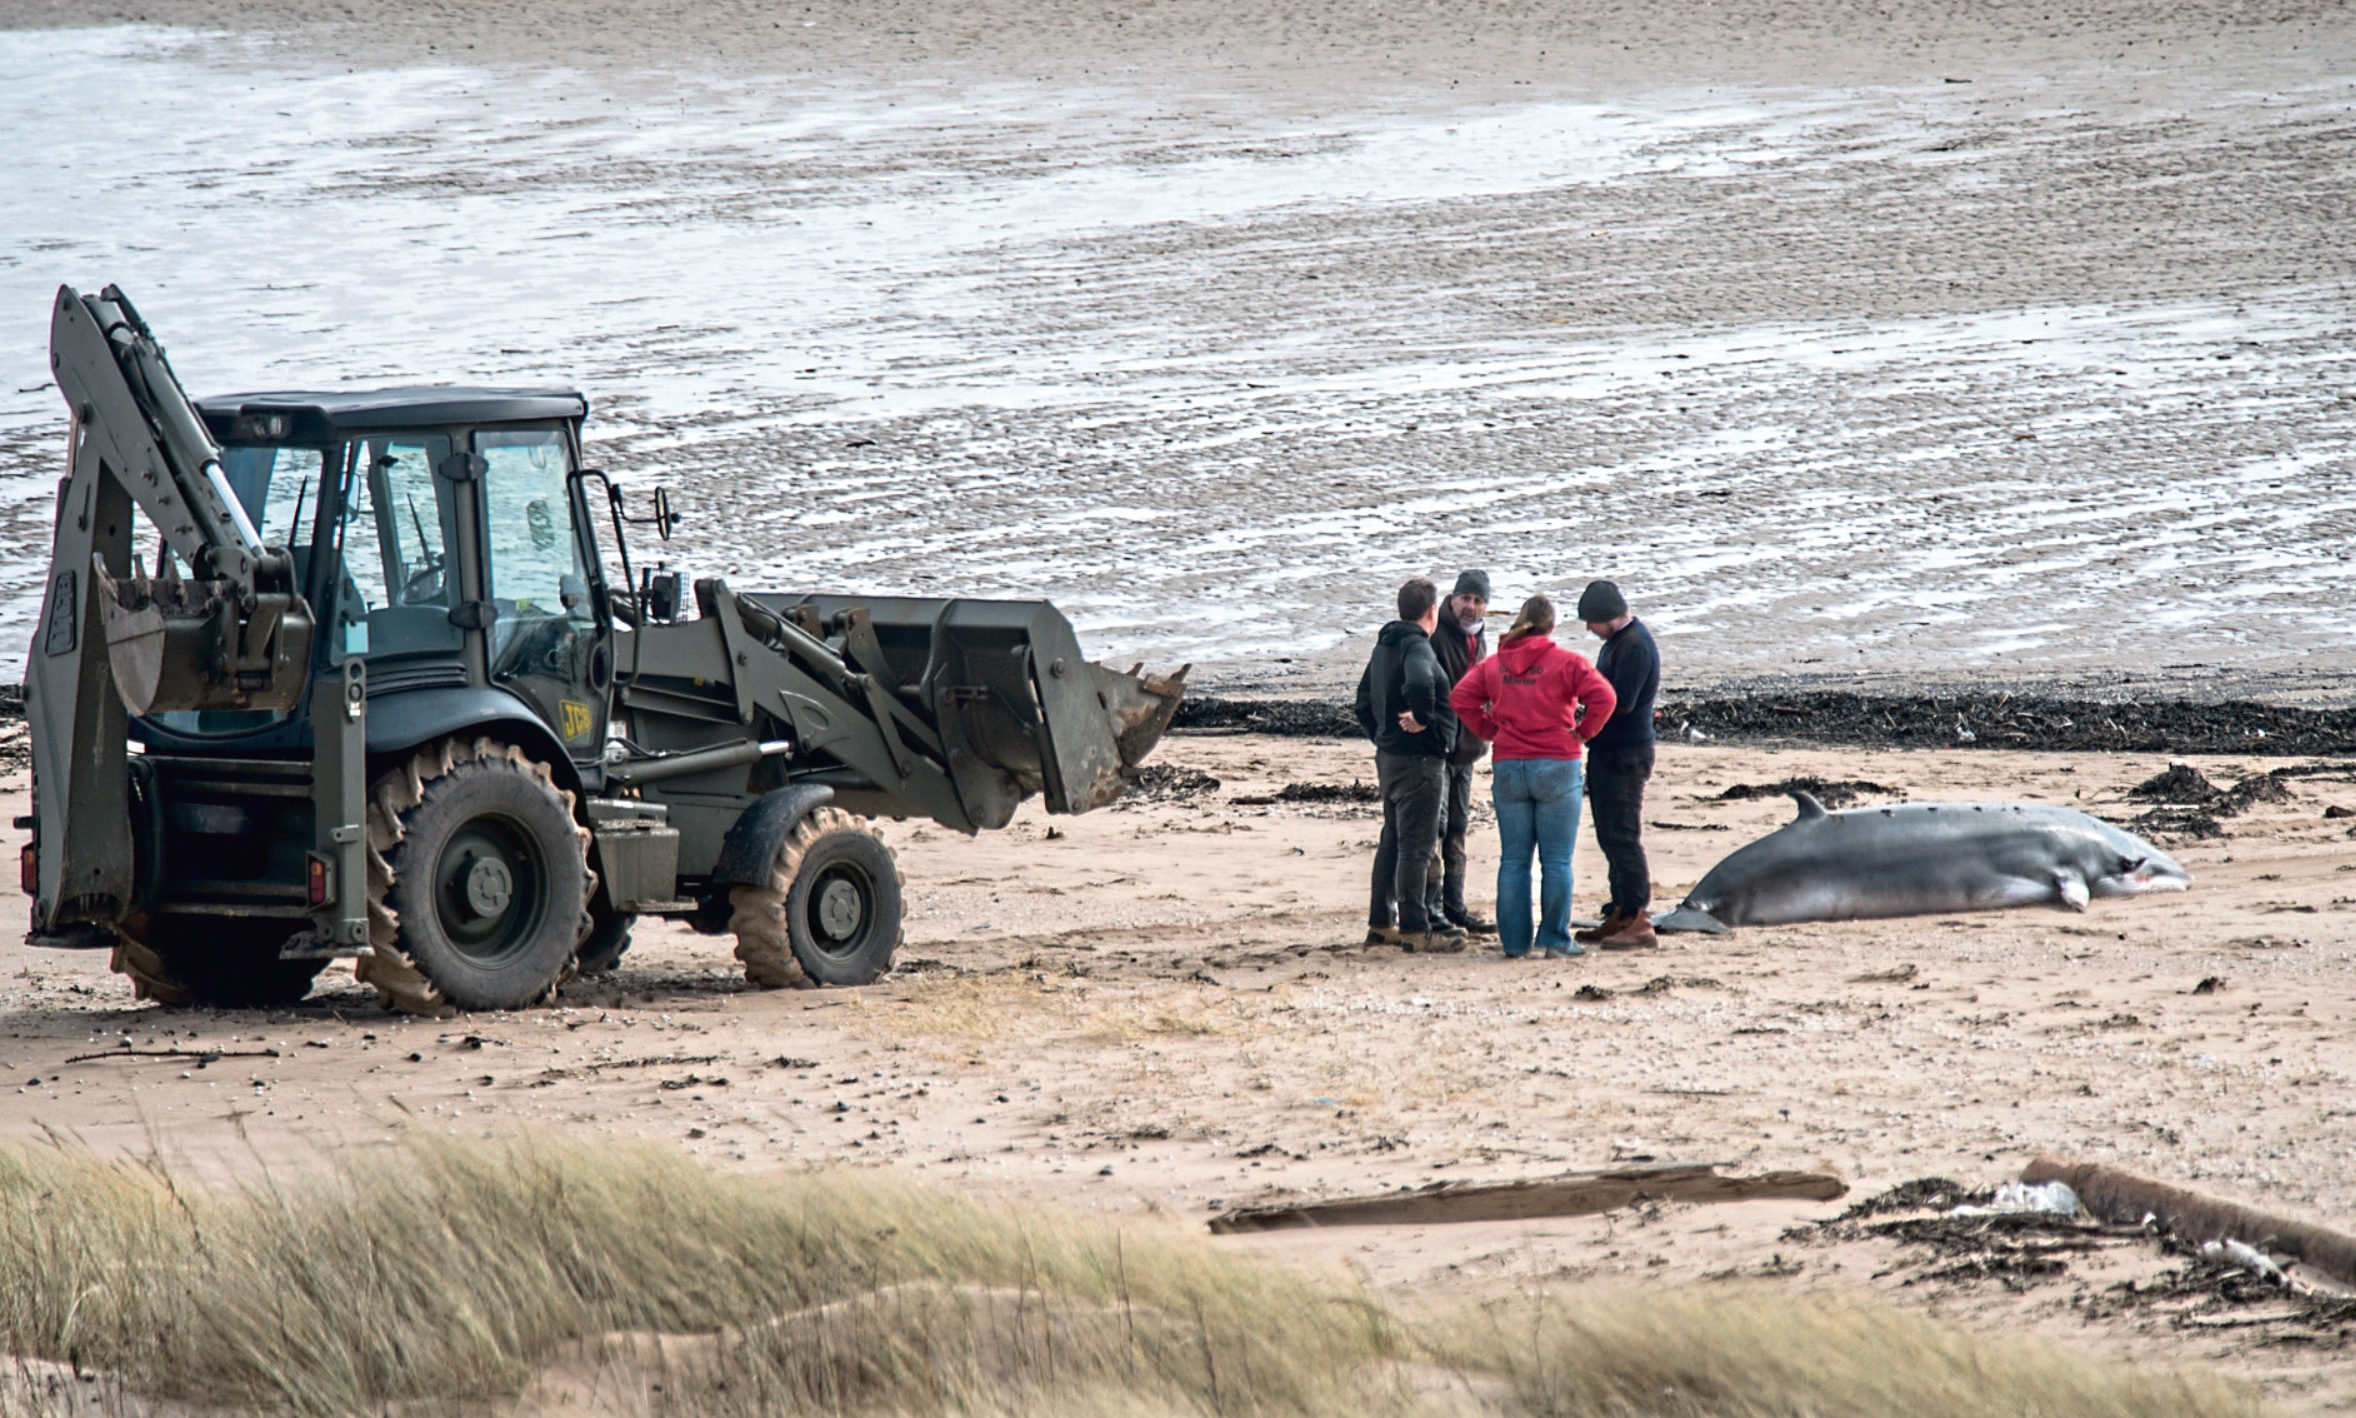 Rescue attempts to save a stranded minkie whale on the beach at Pettycur Bay.